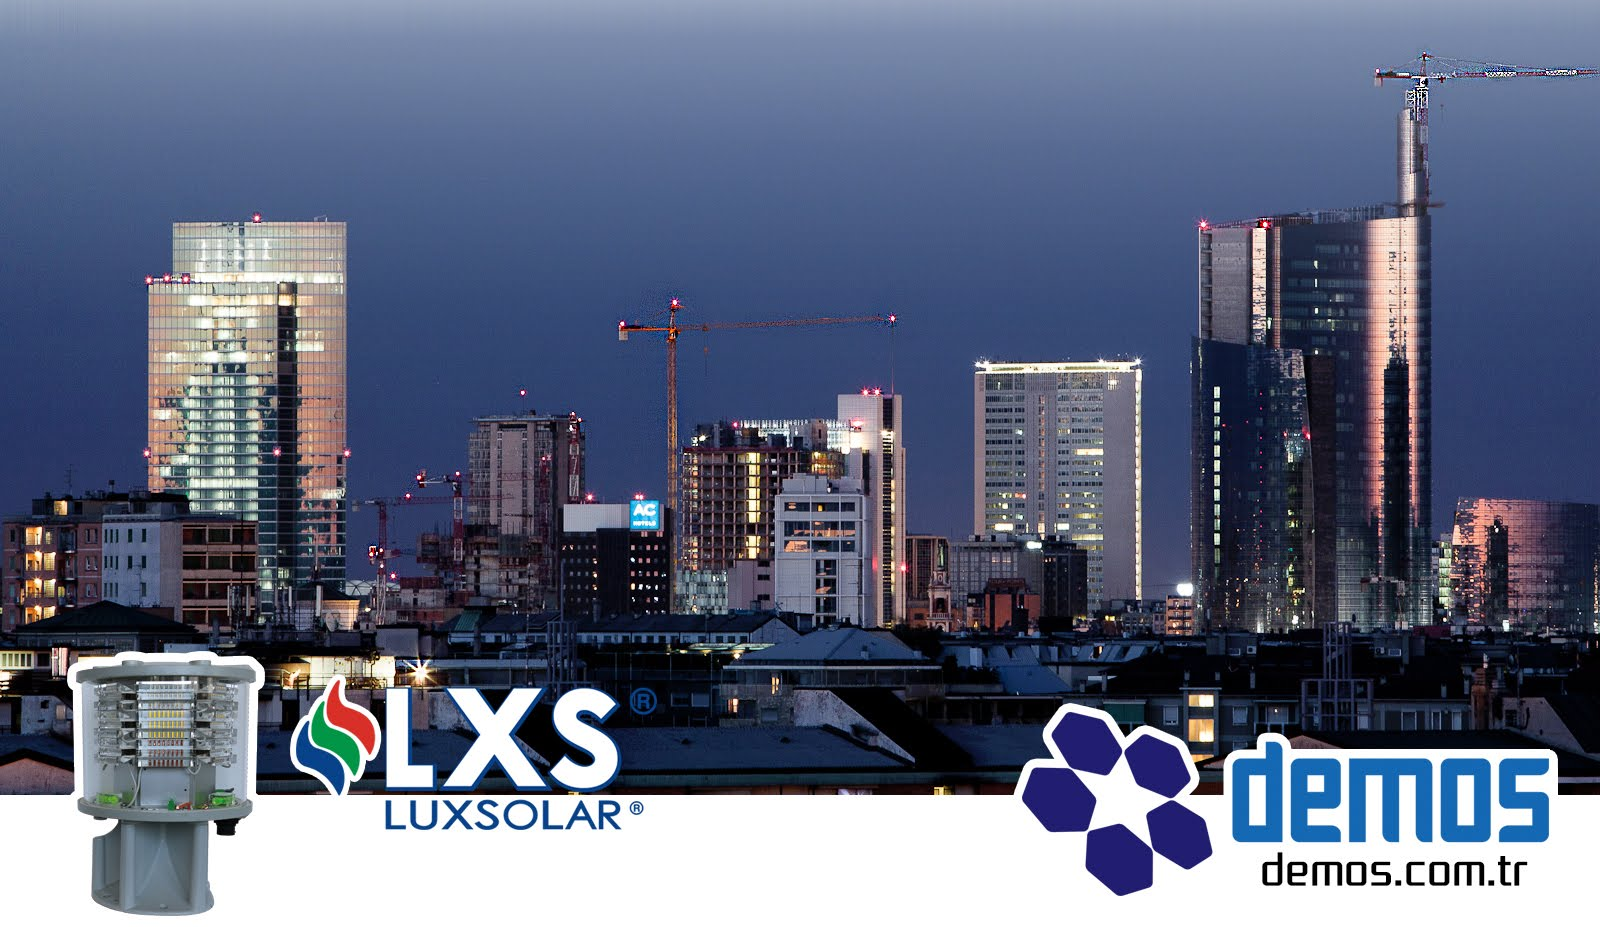 Wetra and Luxsolar brand